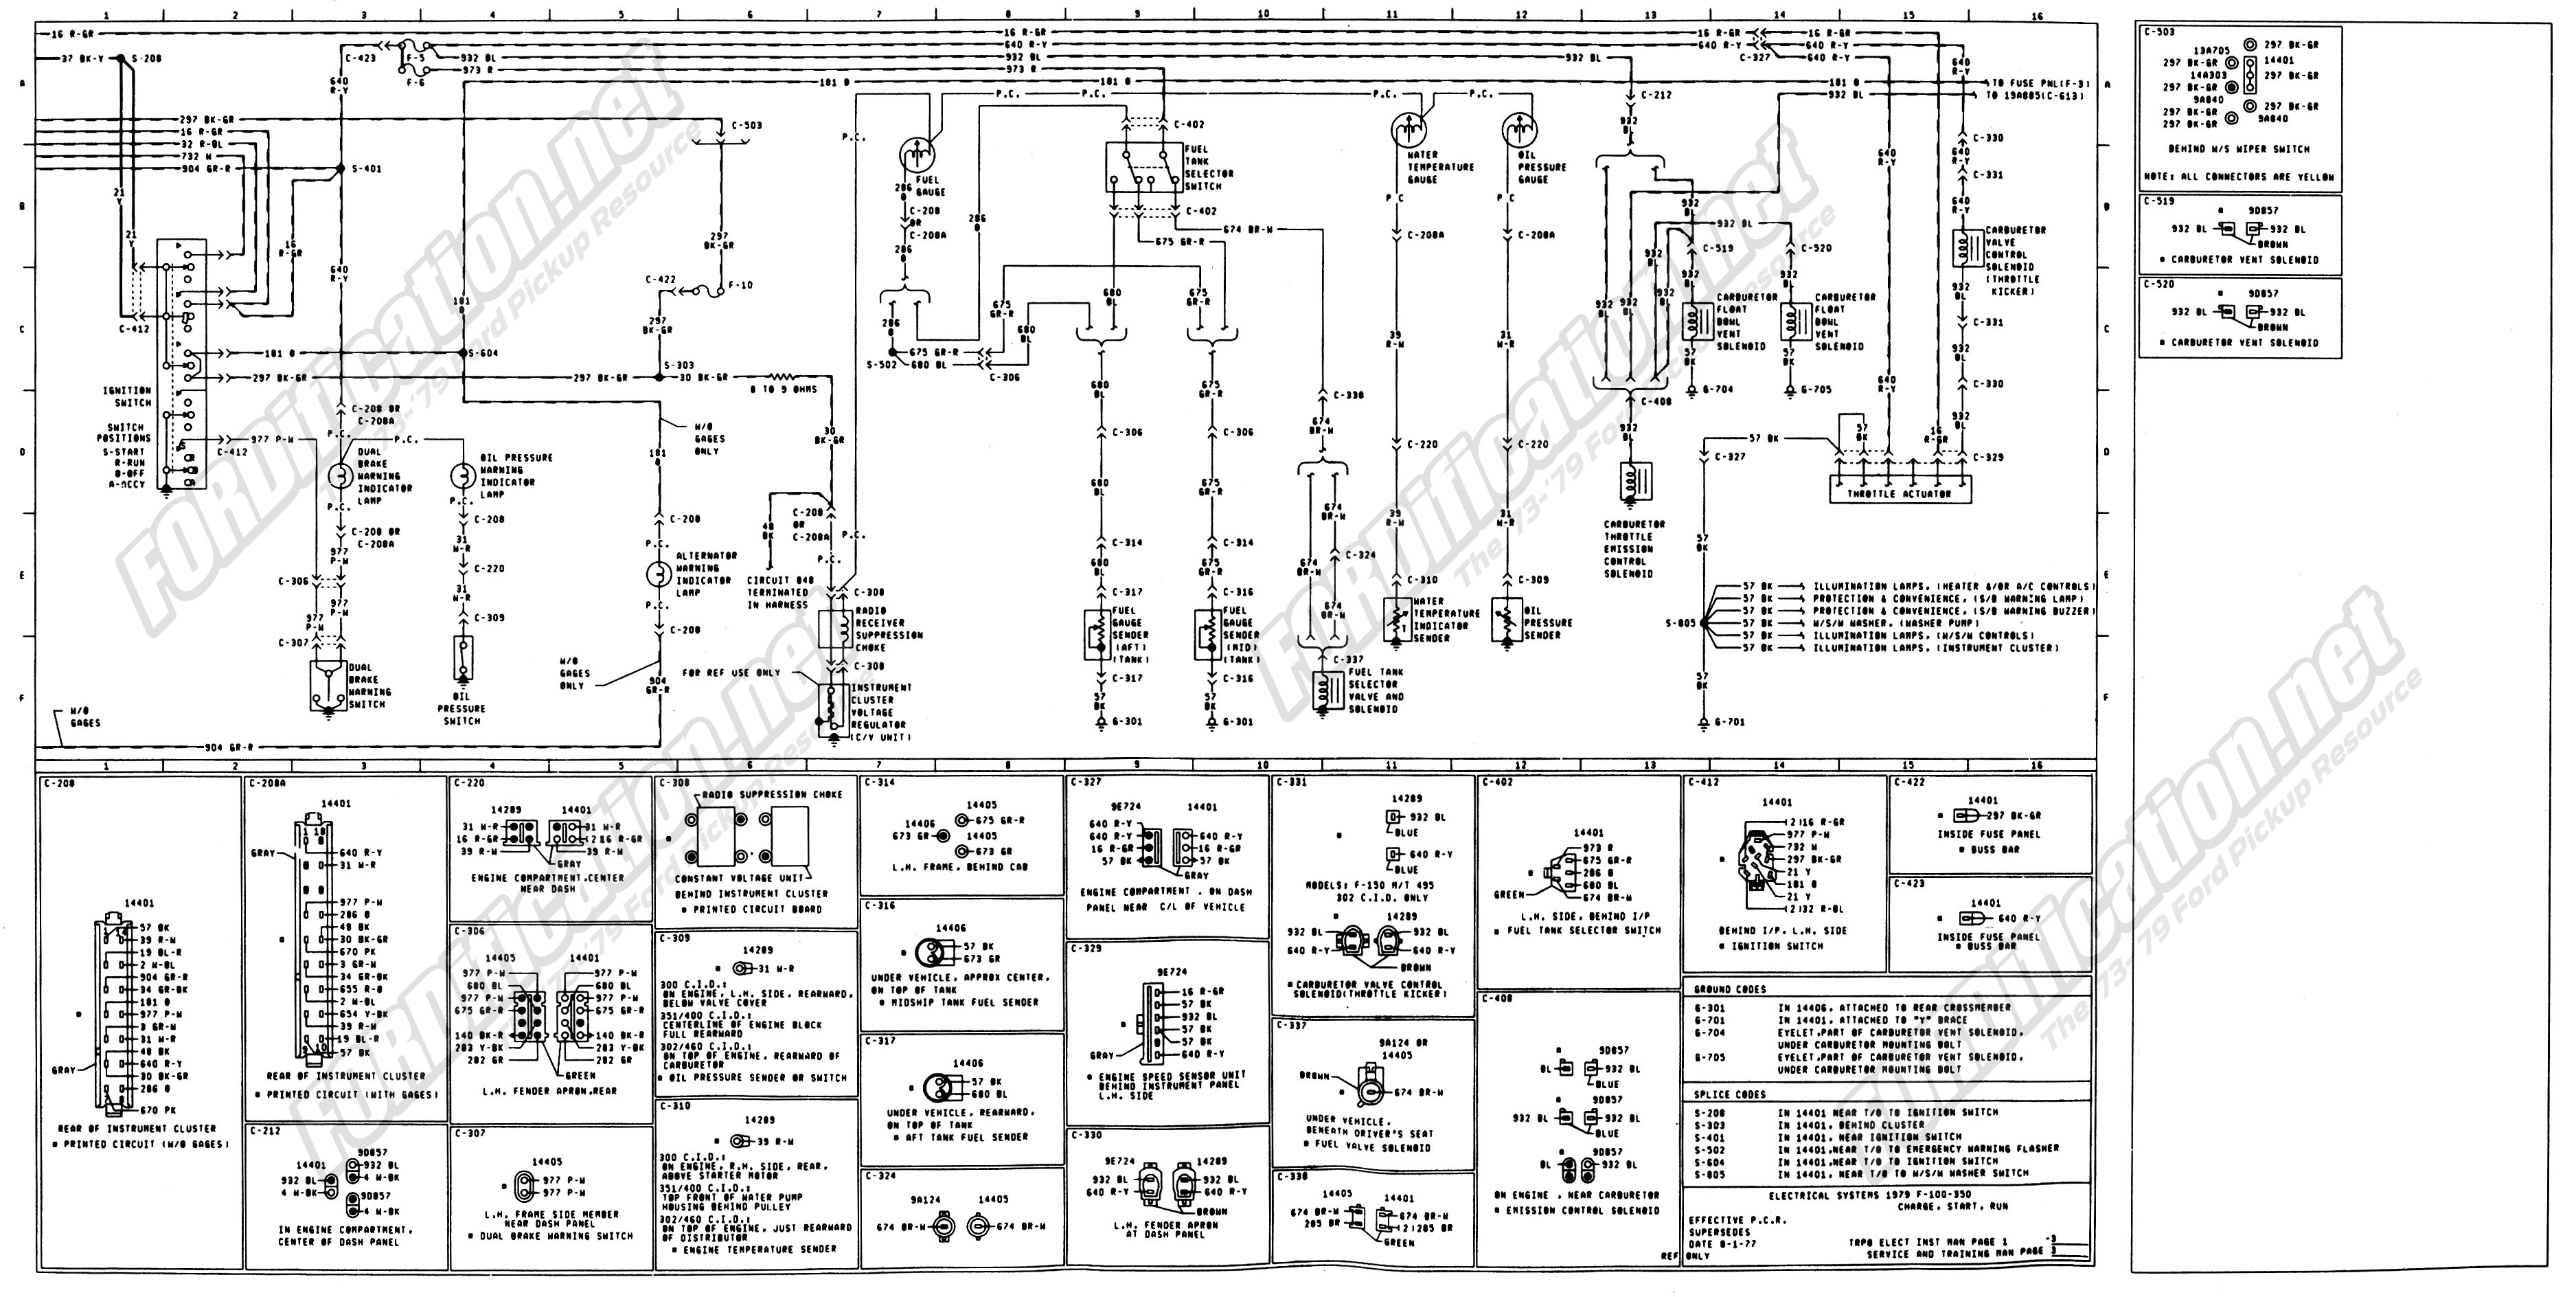 Need Wiring Diagram For 1994 Ford E250 Van Starter Solenoid Fixya 1976 F 250 Data 1973 1979 Truck Diagrams Schematics Fordification Net 1996